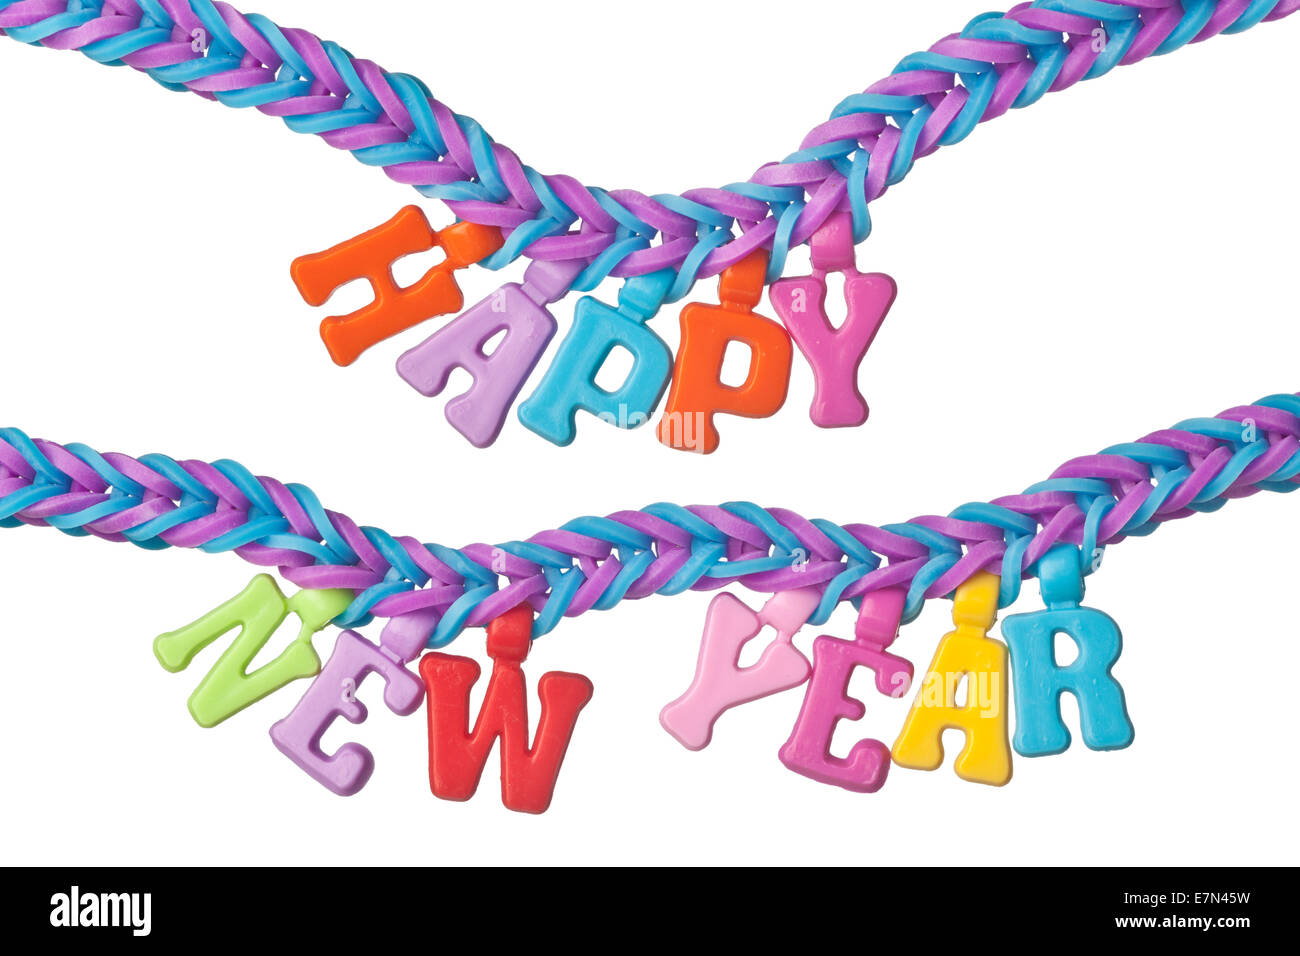 Colorful rubber band bracelet with the words HAPPY NEW YEAR isolated on white background - Stock Image